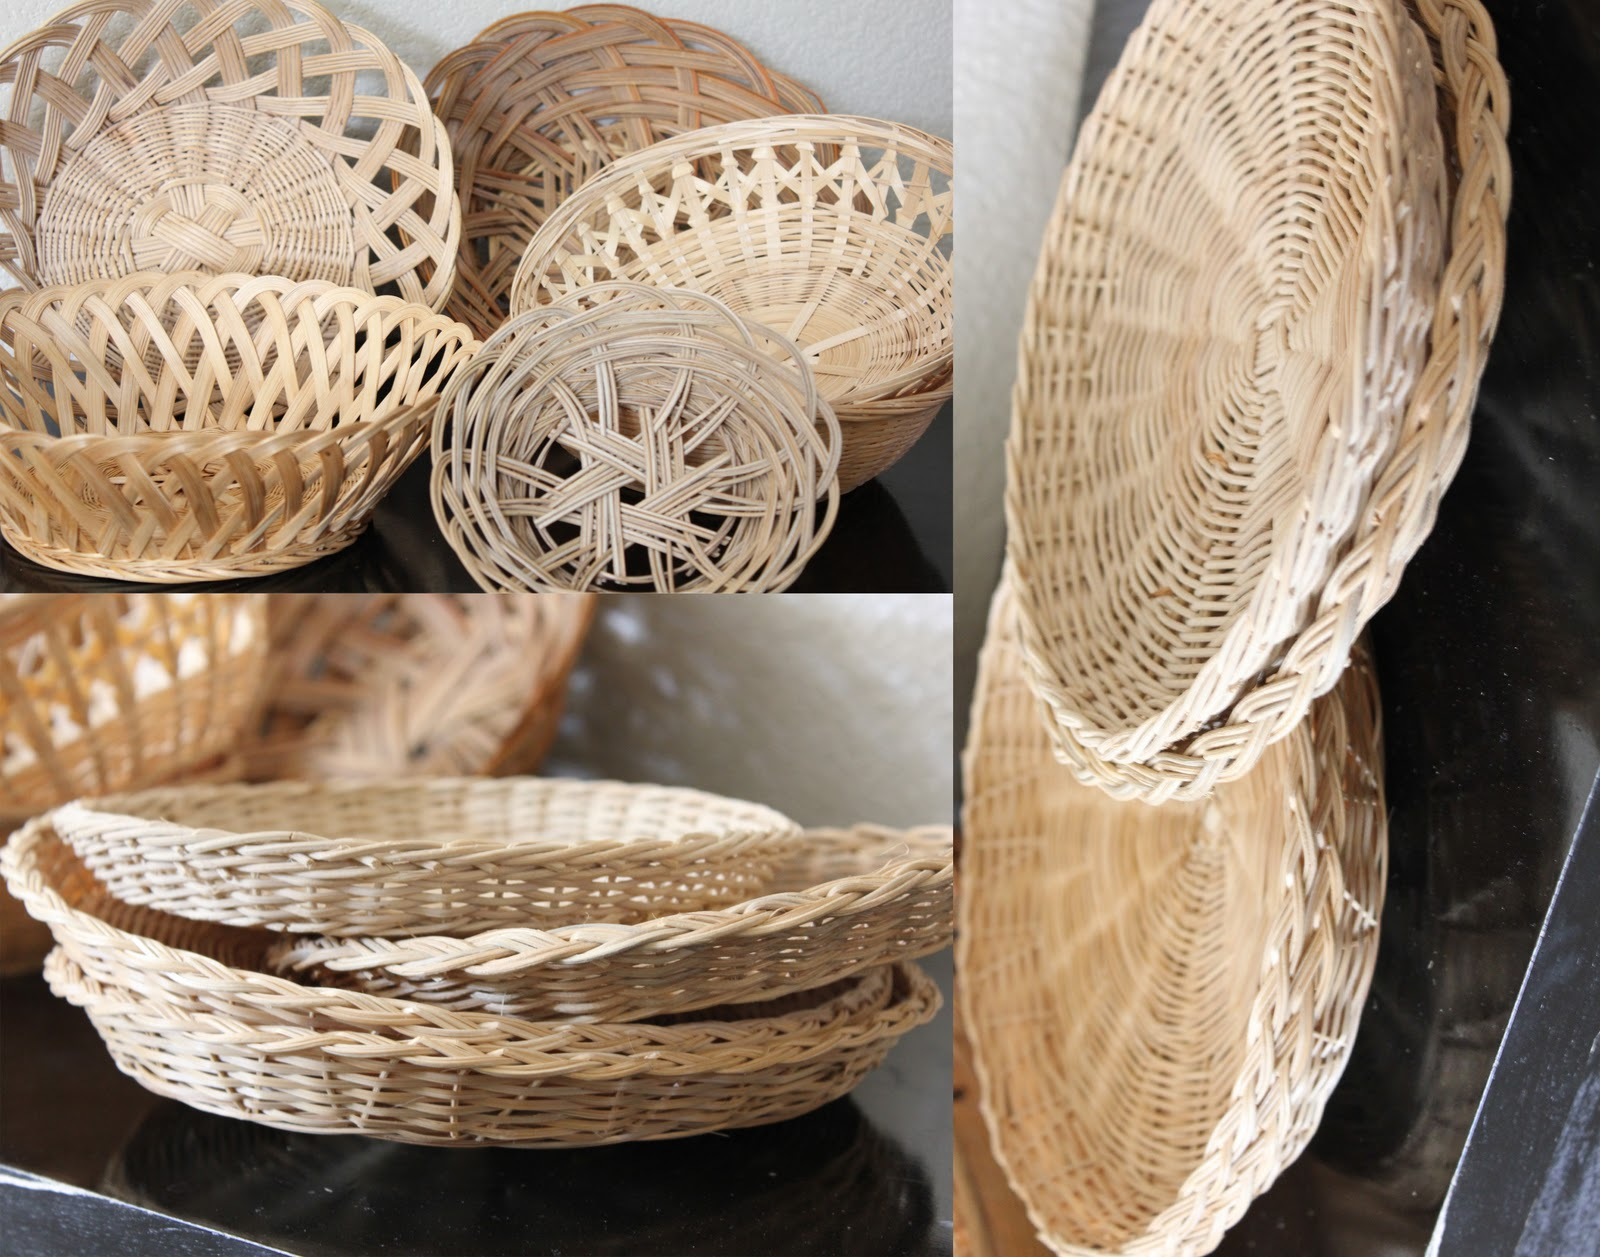 Extraordinary Wicker Plate Holders Bulk Contemporary - Best Image ... Extraordinary Wicker Plate Holders Bulk Contemporary Best Image & Cool Wicker Paper Plate Holders Wholesale Gallery - Best Image ...